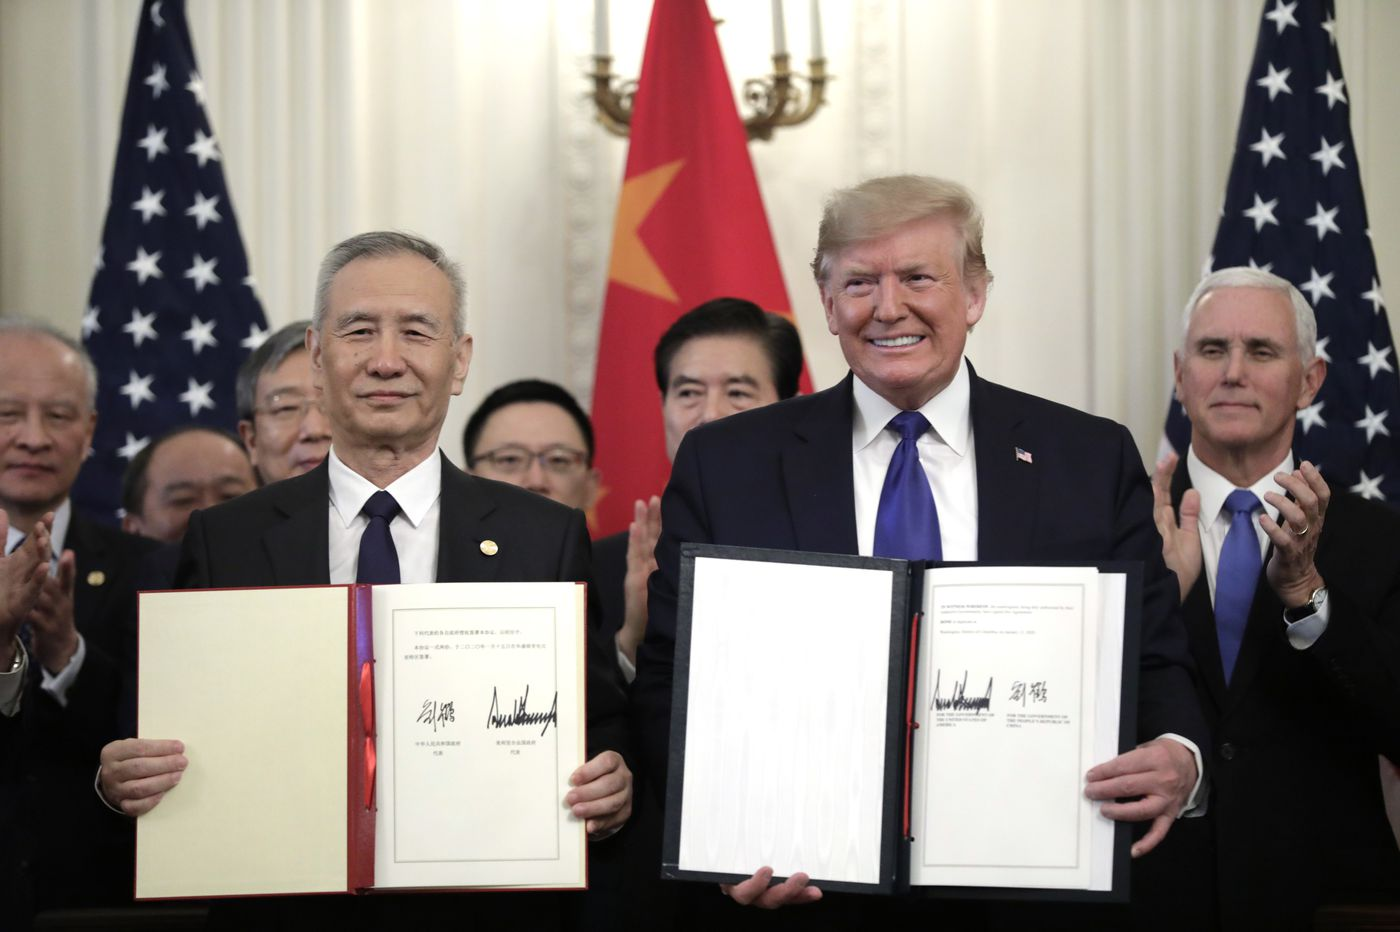 US, China deal aims to simmer long-running trade tensions